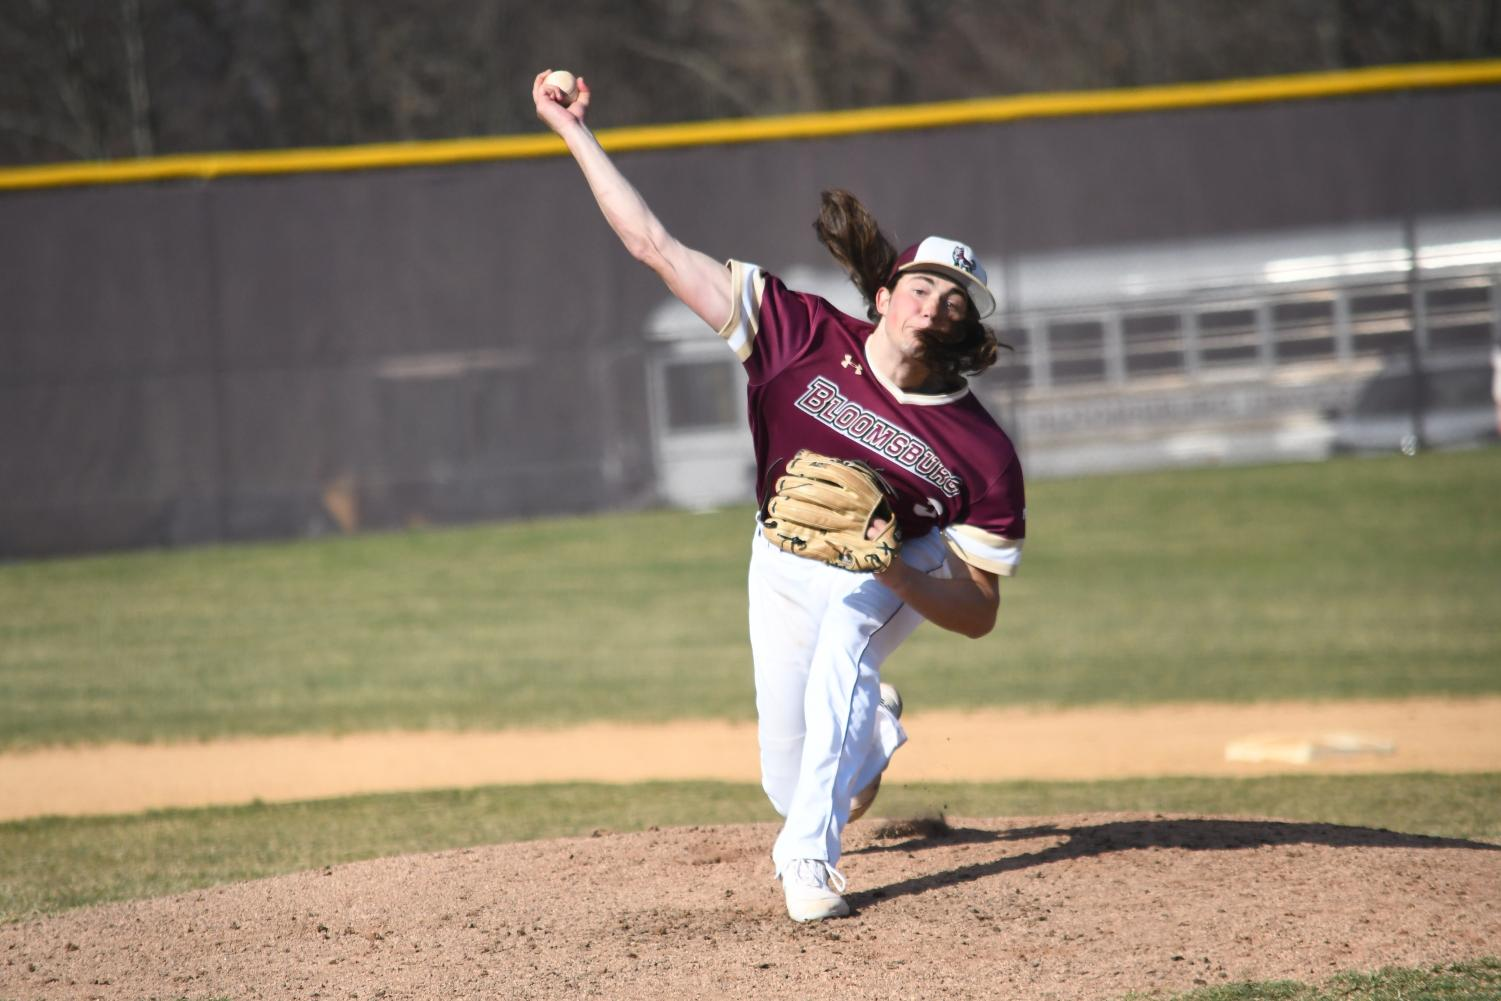 Nick+Stoner+pitched+a+complete+game+while+only+allowing+one+run+in+his+most+recent+game+against++Davis+and+Elkins.